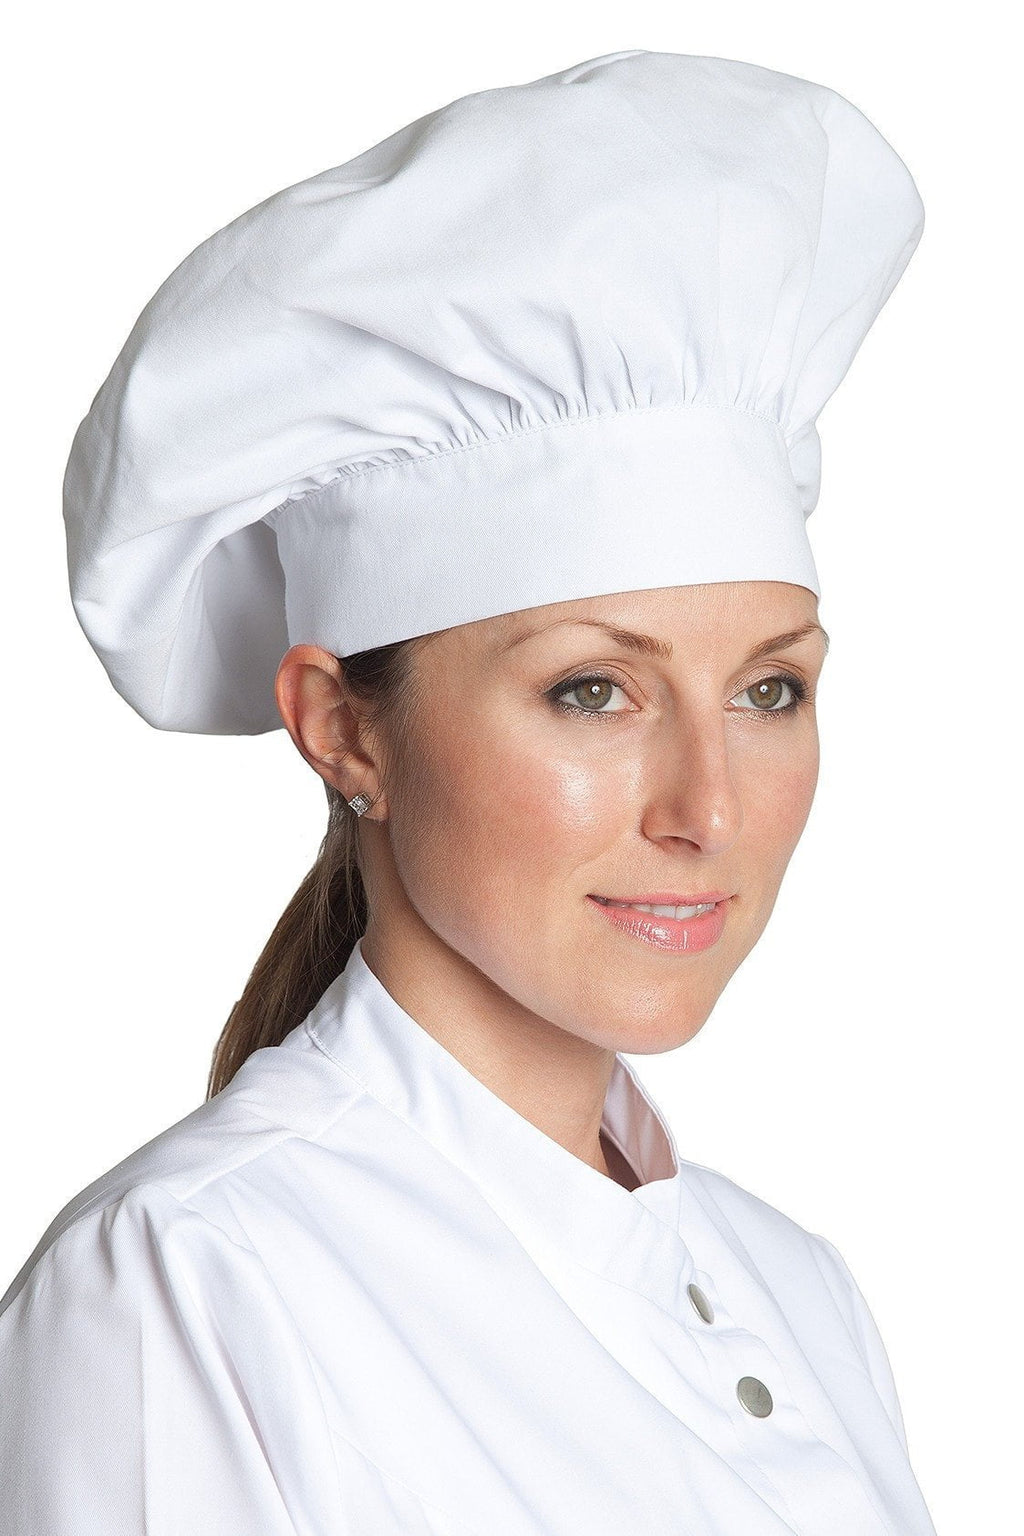 Poplin Chef Hats White Profile